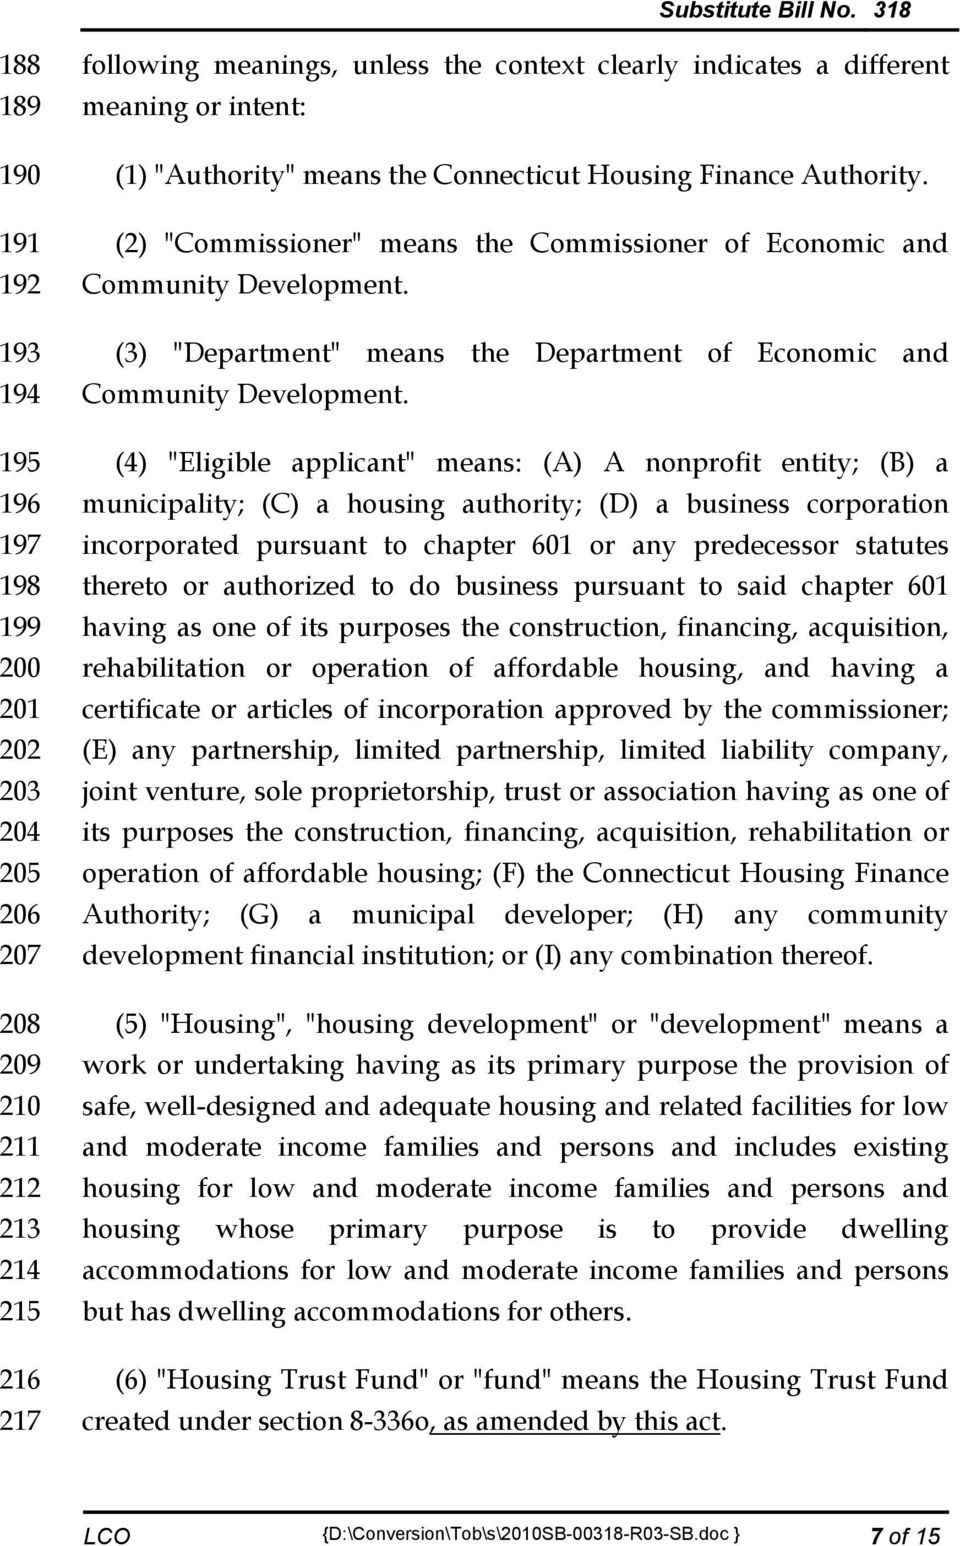 "(3) ""Department"" means the Department of Economic and Community Development."